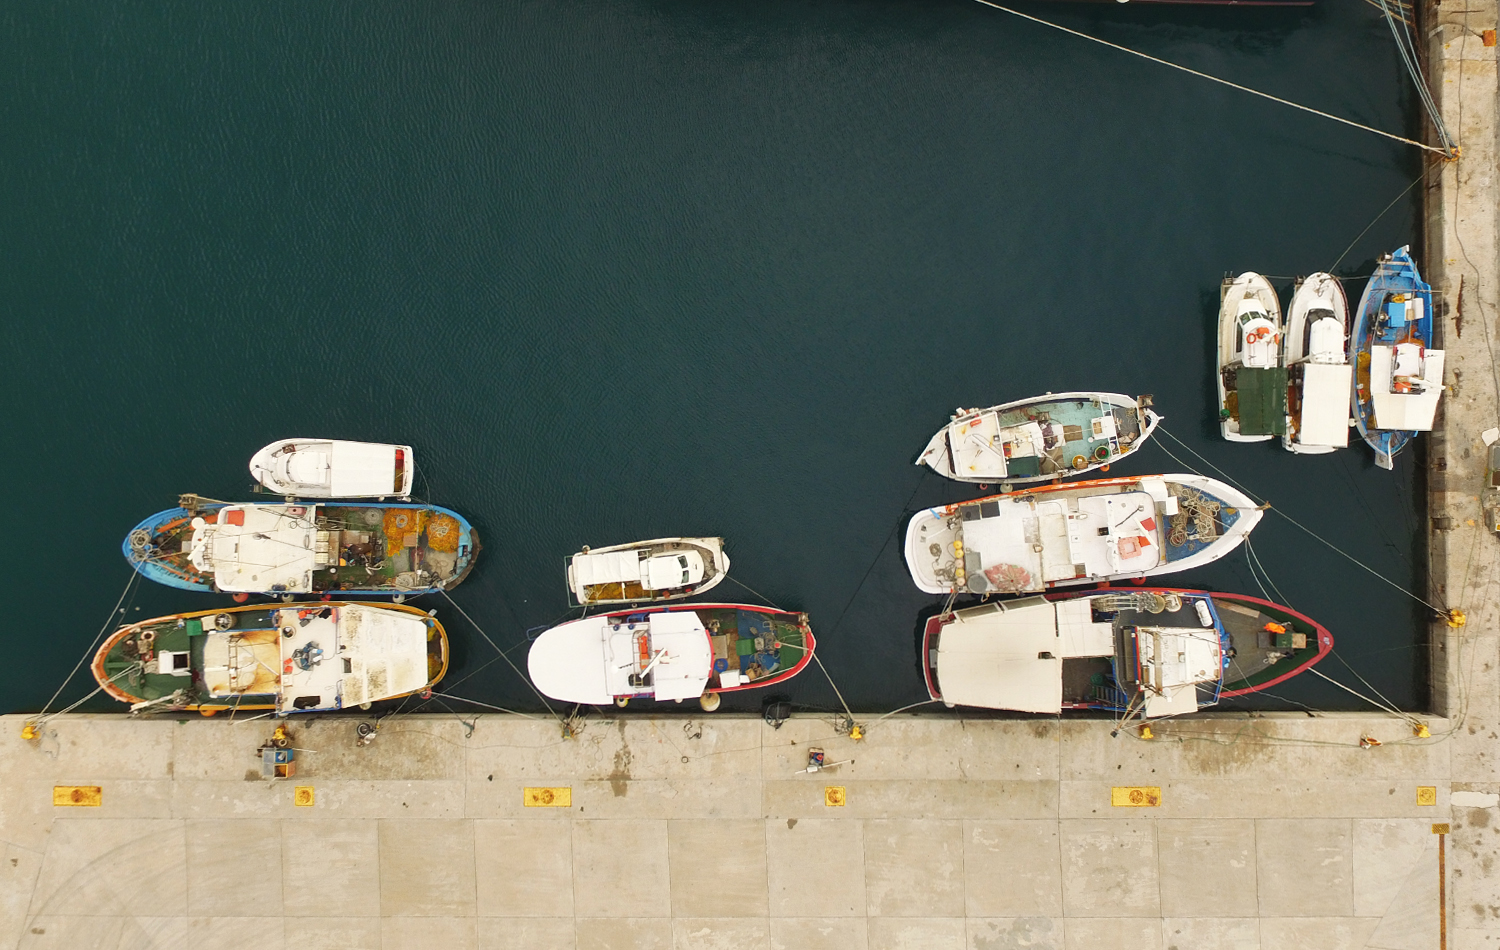 Some boats floating in Kissamos harbour